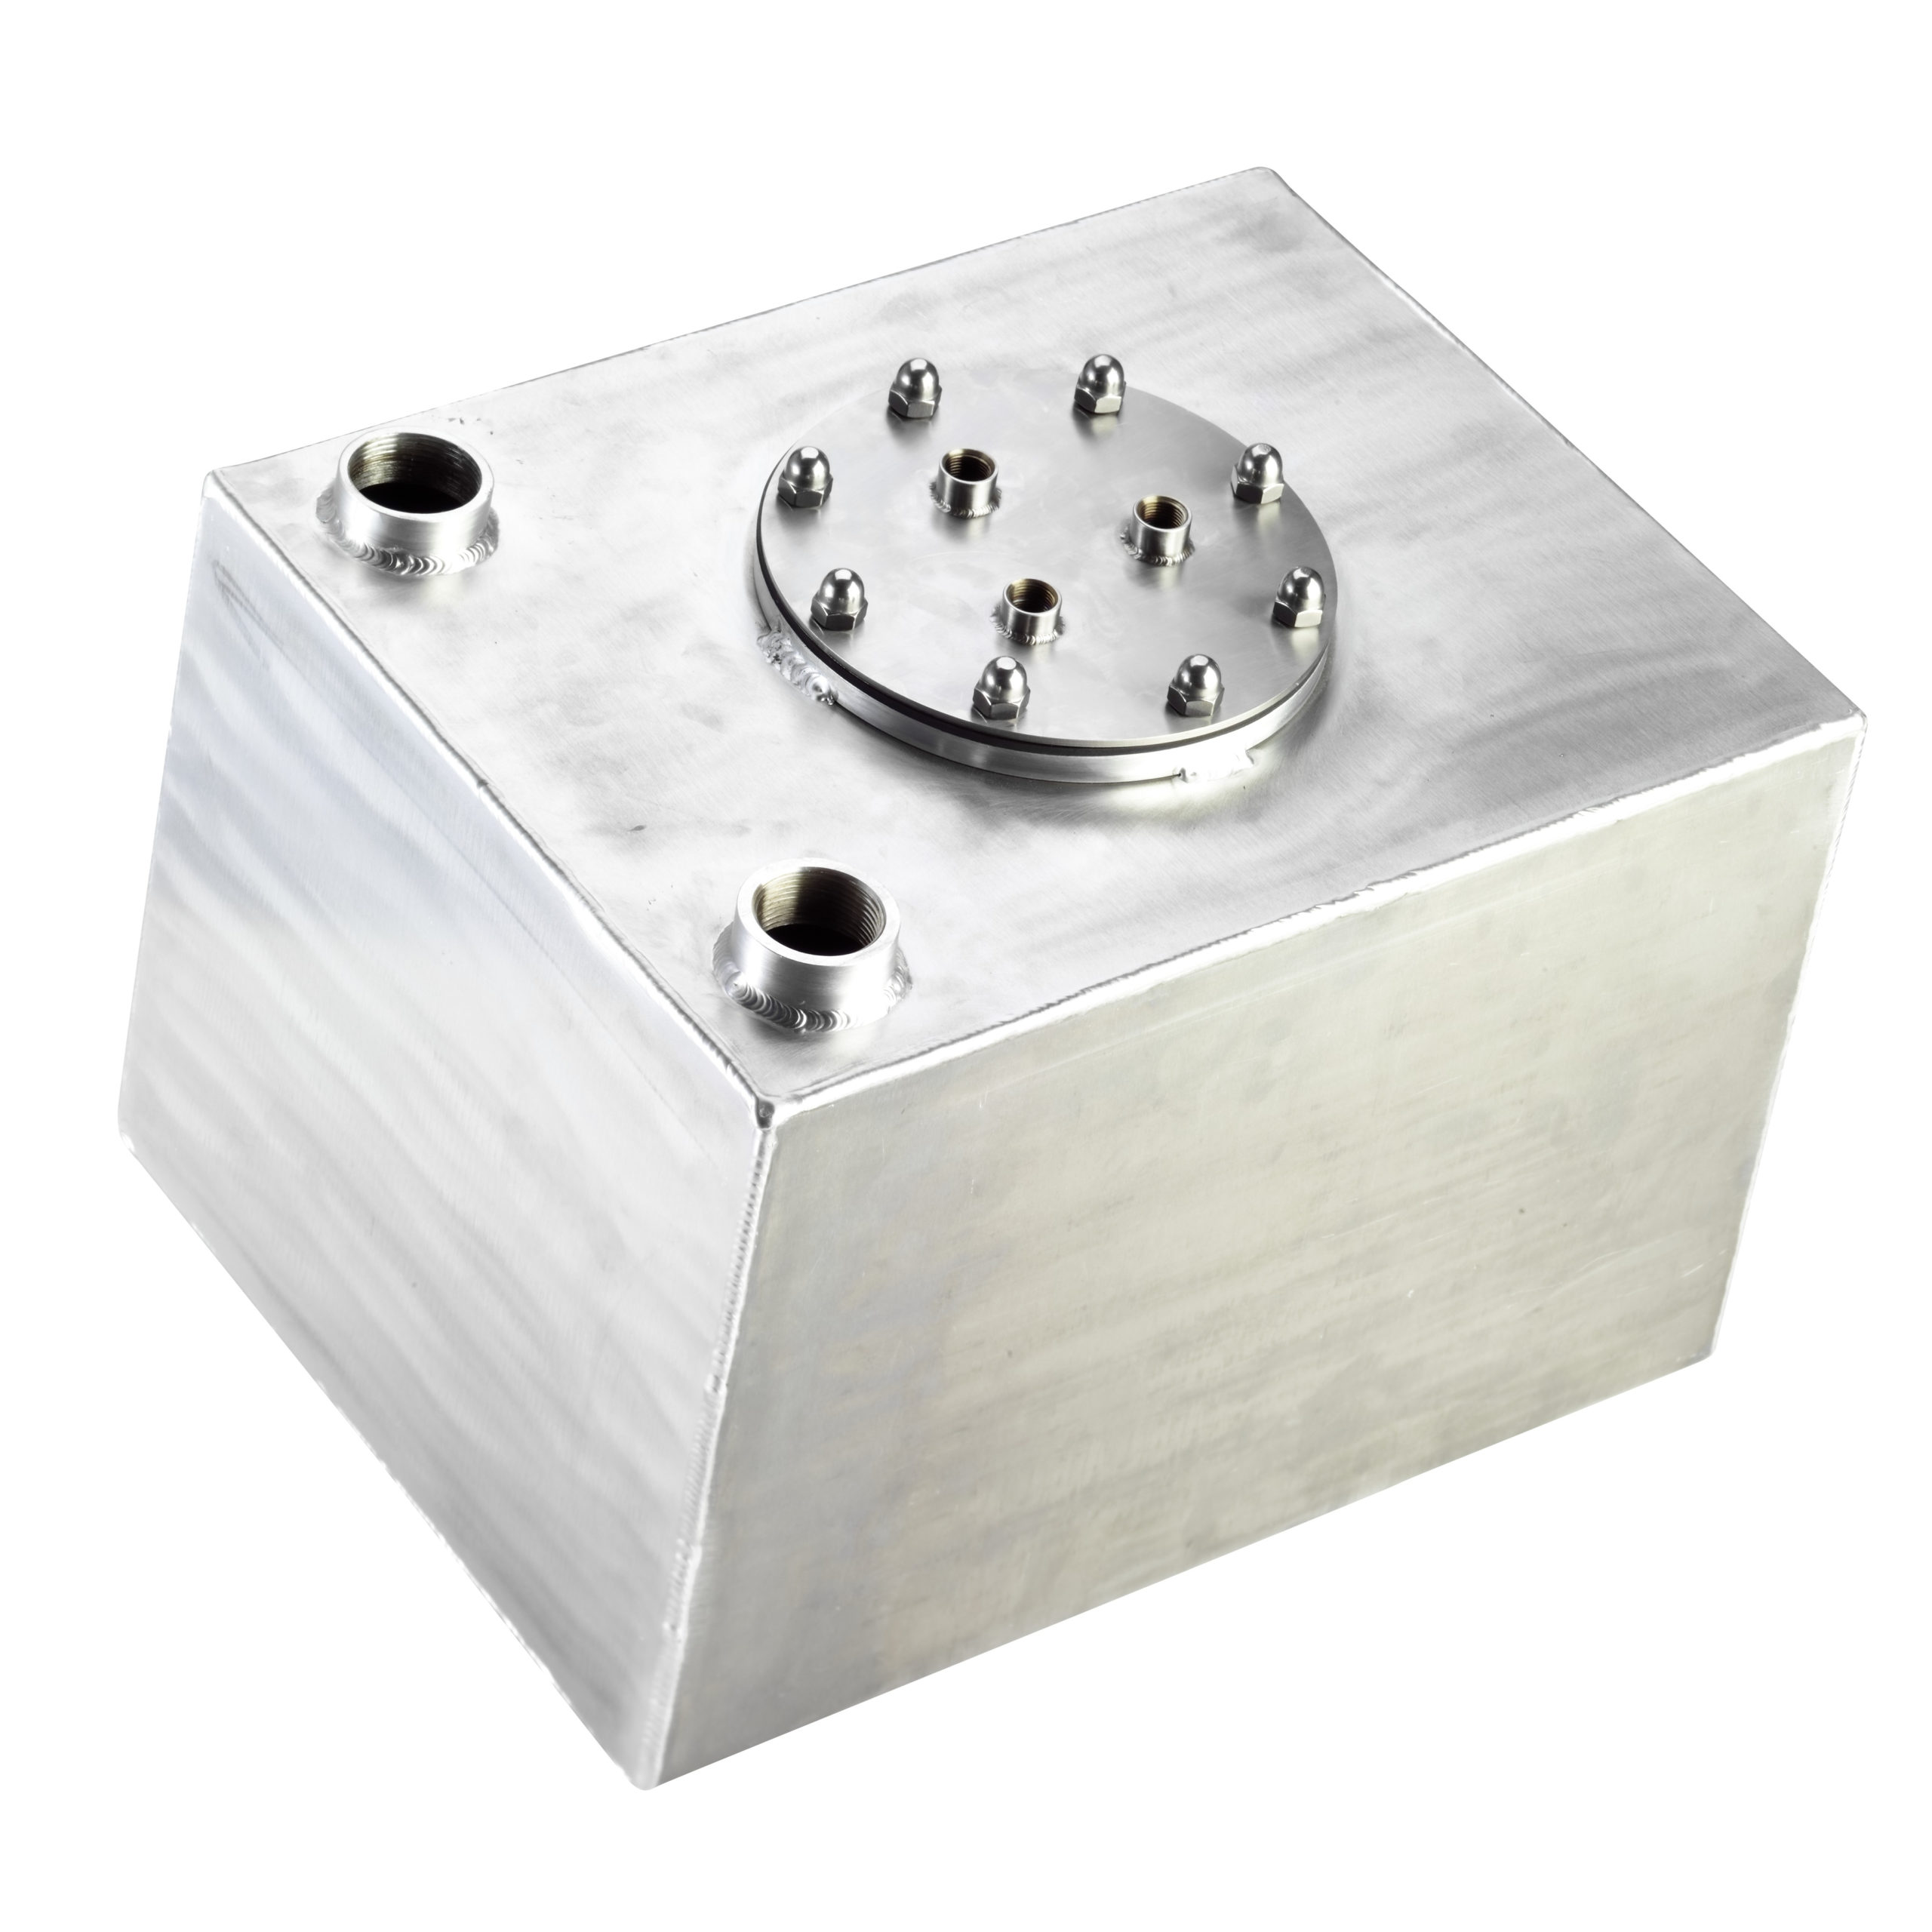 40 Litre Fuel Tank - Stainless Steel or Aluminium